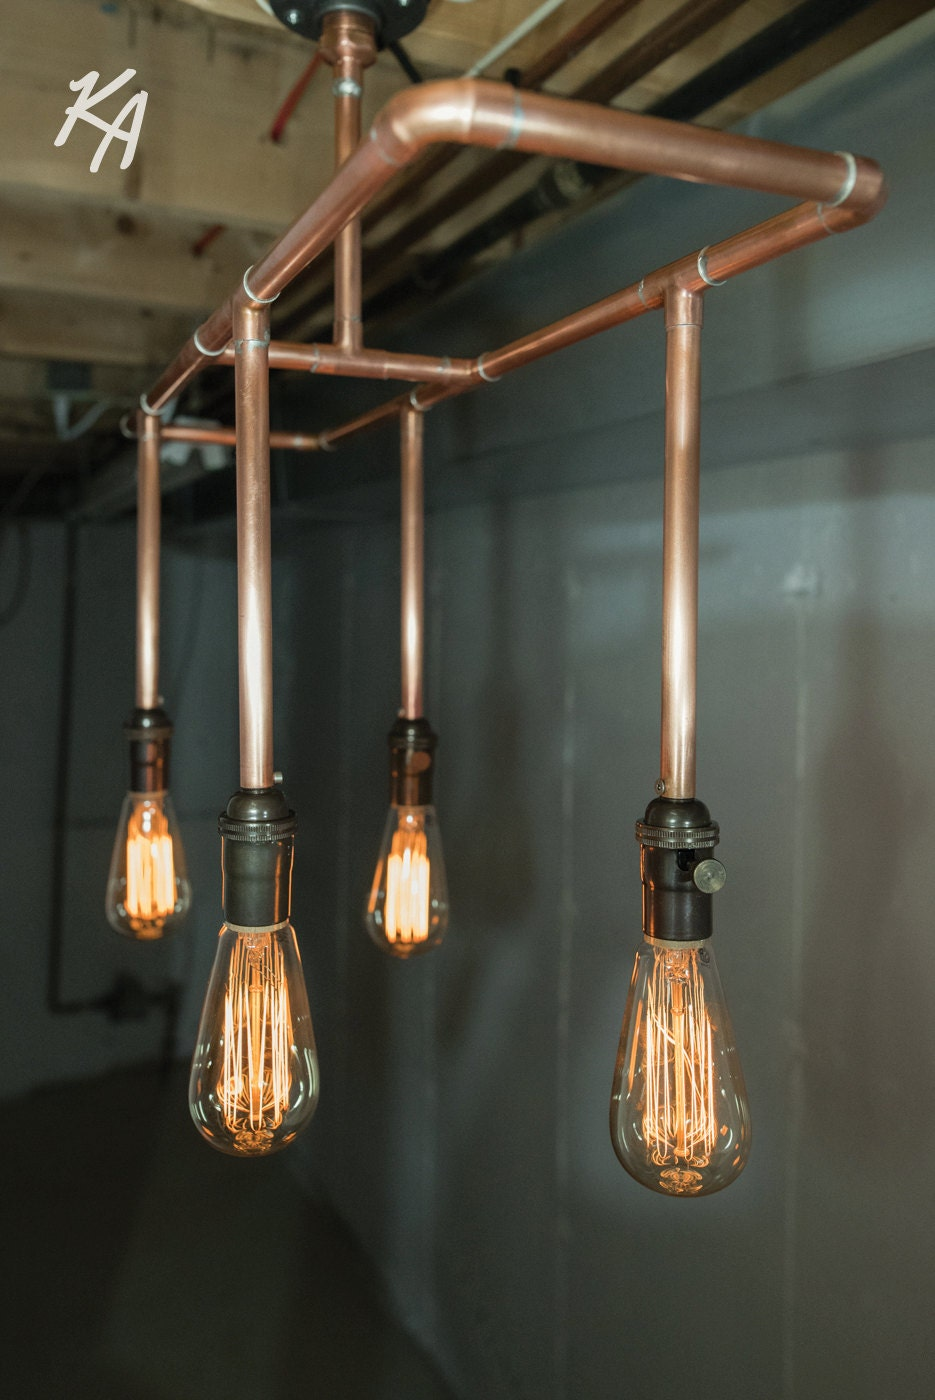 Sale Copper Pipe Light Fixture Copper By Kineticadditions